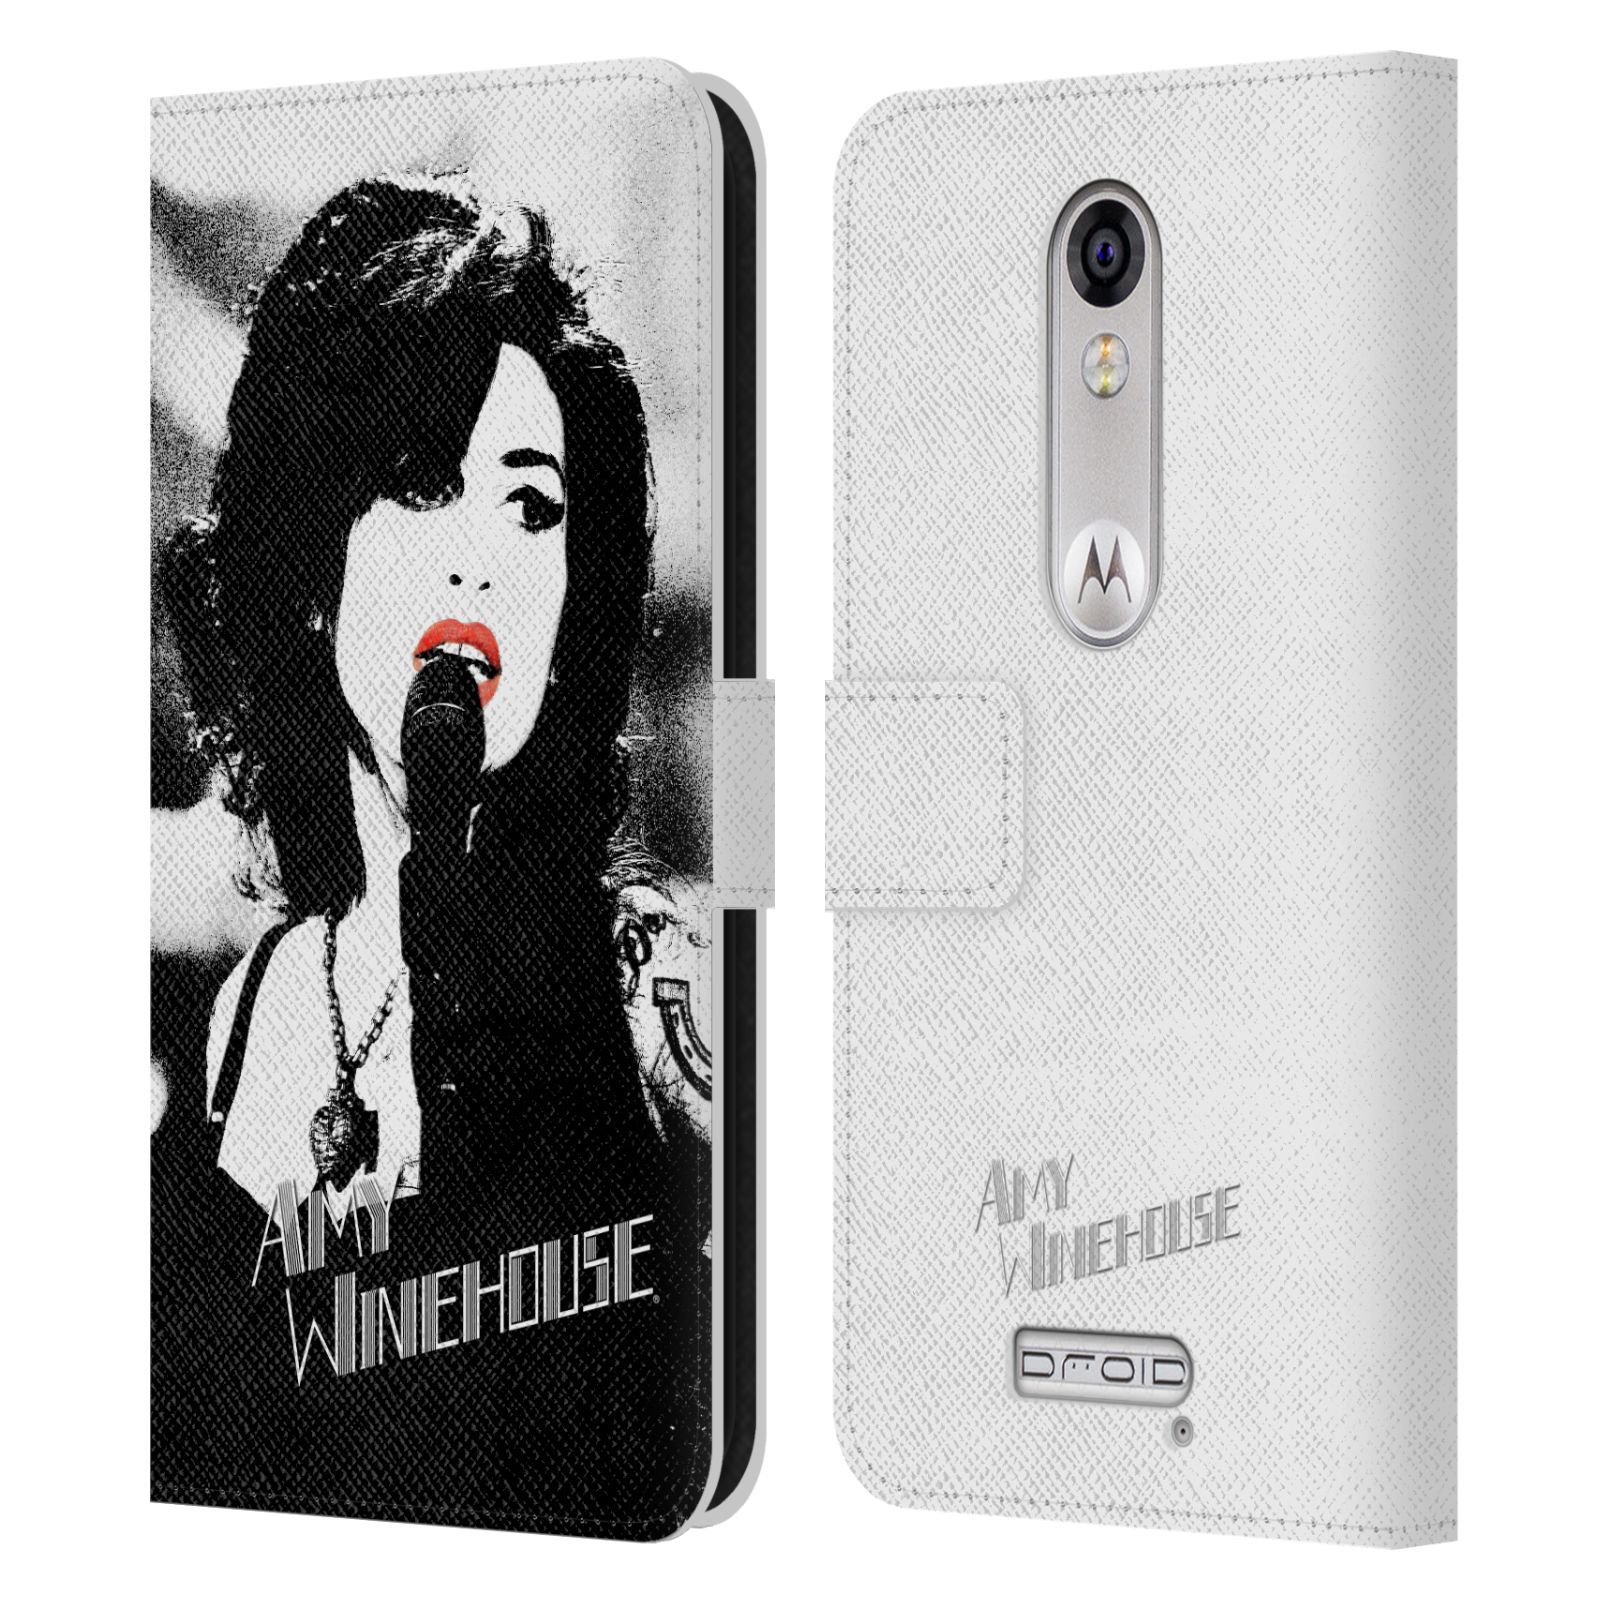 OFFICIAL-AMY-WINEHOUSE-PORTRAITS-LEATHER-BOOK-WALLET-CASE-FOR-MOTOROLA-PHONES-2